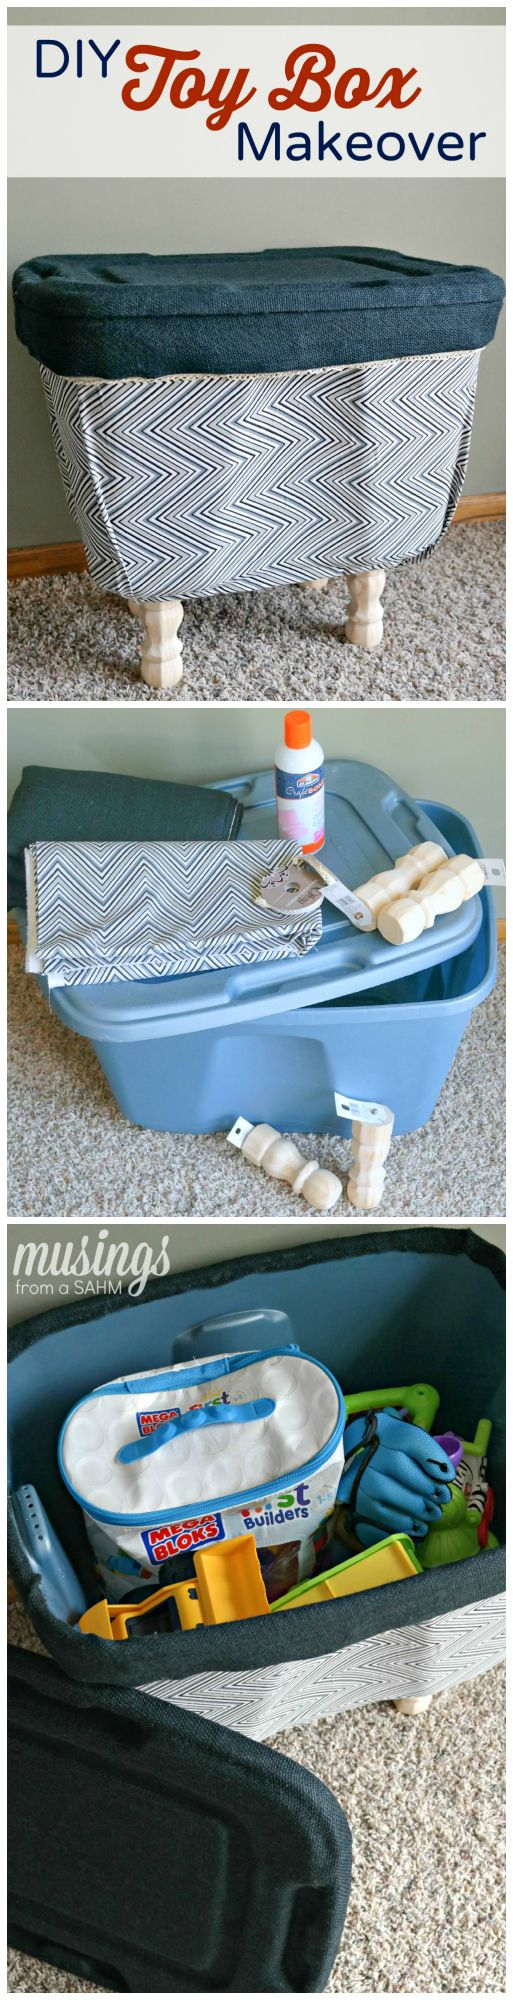 DIY Toy Box Makeover | Pinterest | Diy toy box, Plastic bins and Toy ...